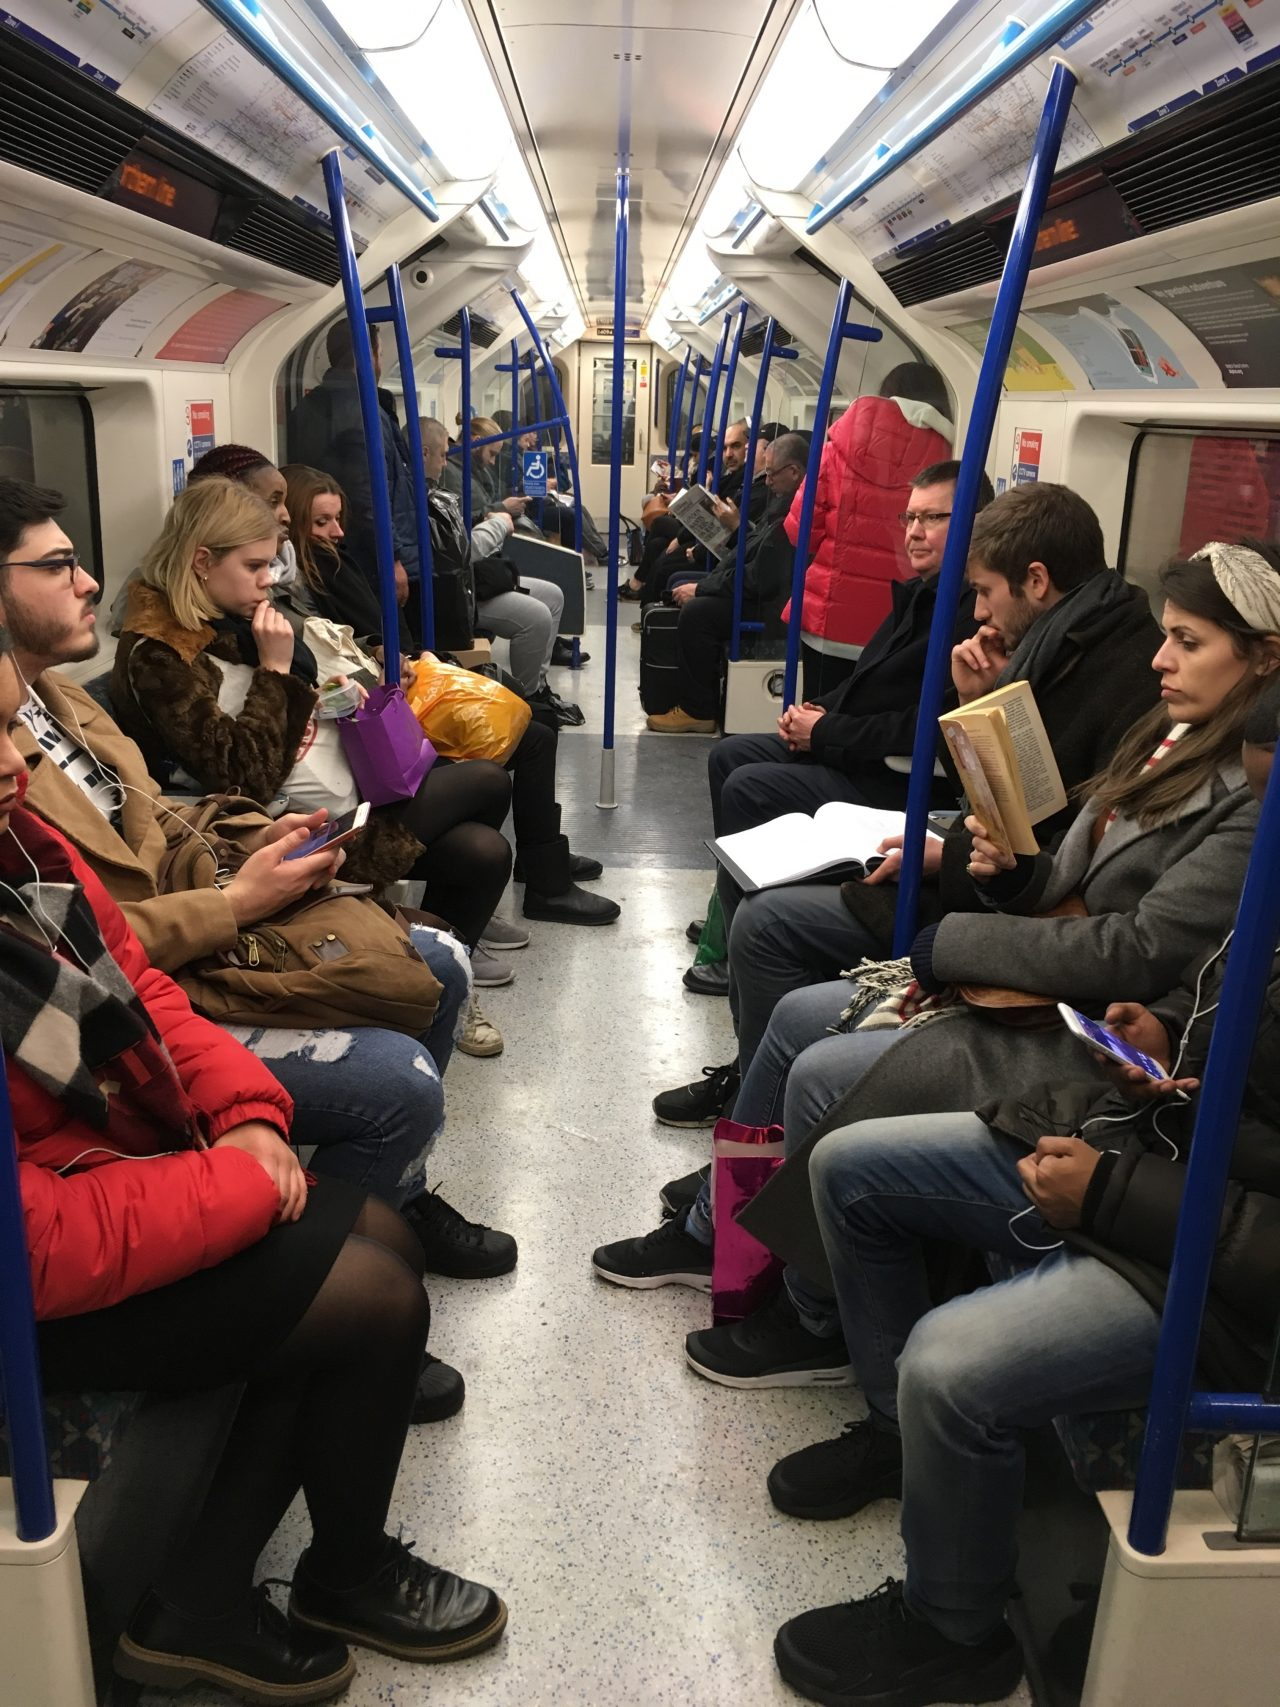 people commuting during coronavirus on the tube